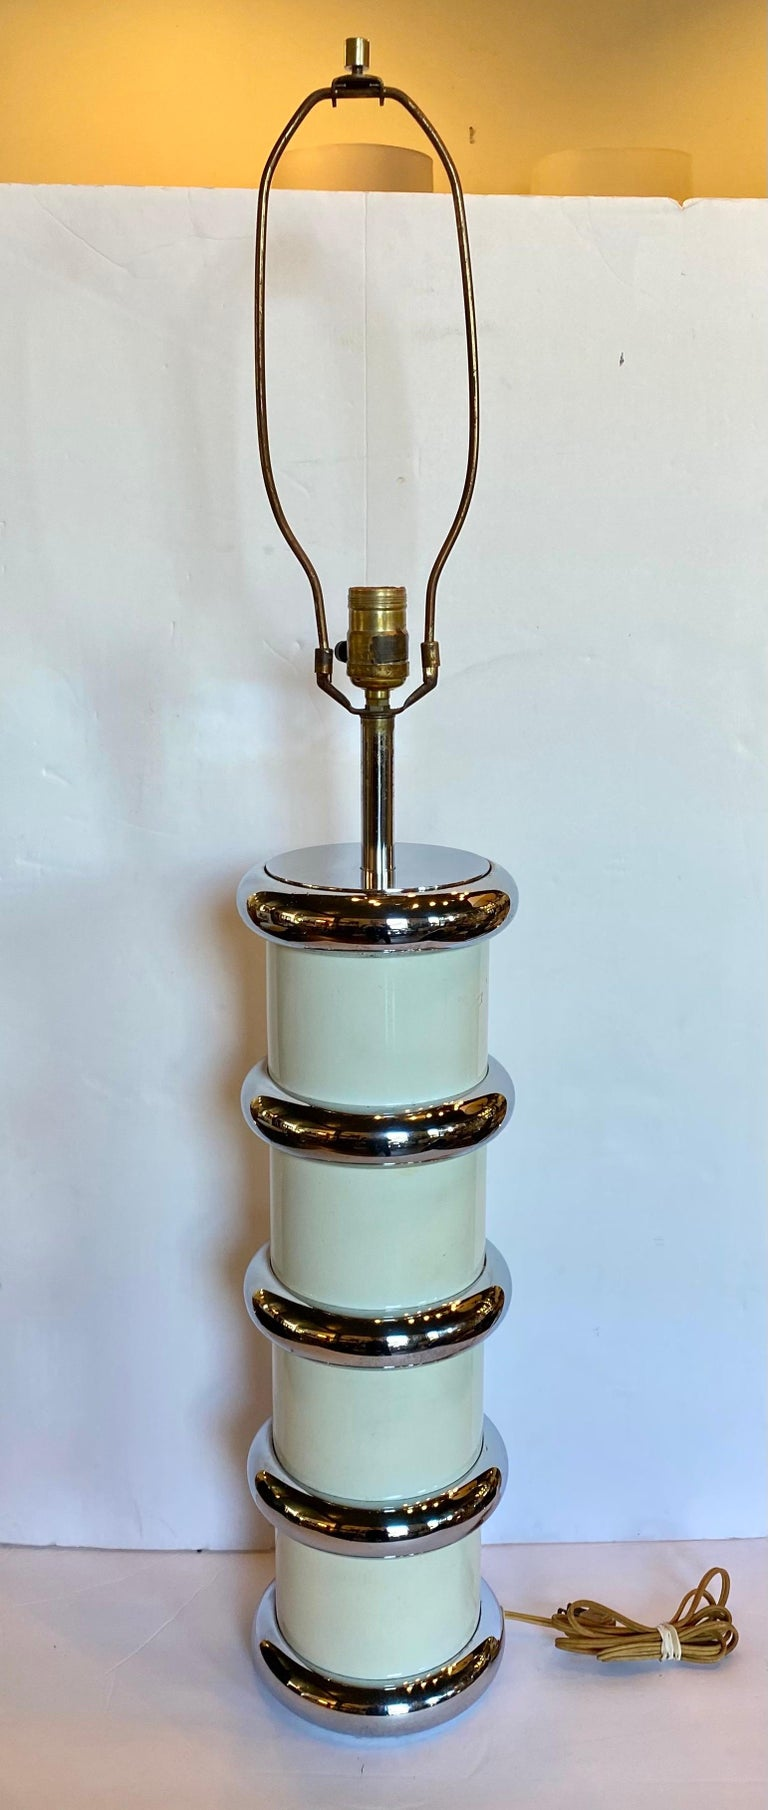 Metal Modern Karl Springer Style Chrome Ring Table Lamp by Mutual Sunset, 1970s For Sale